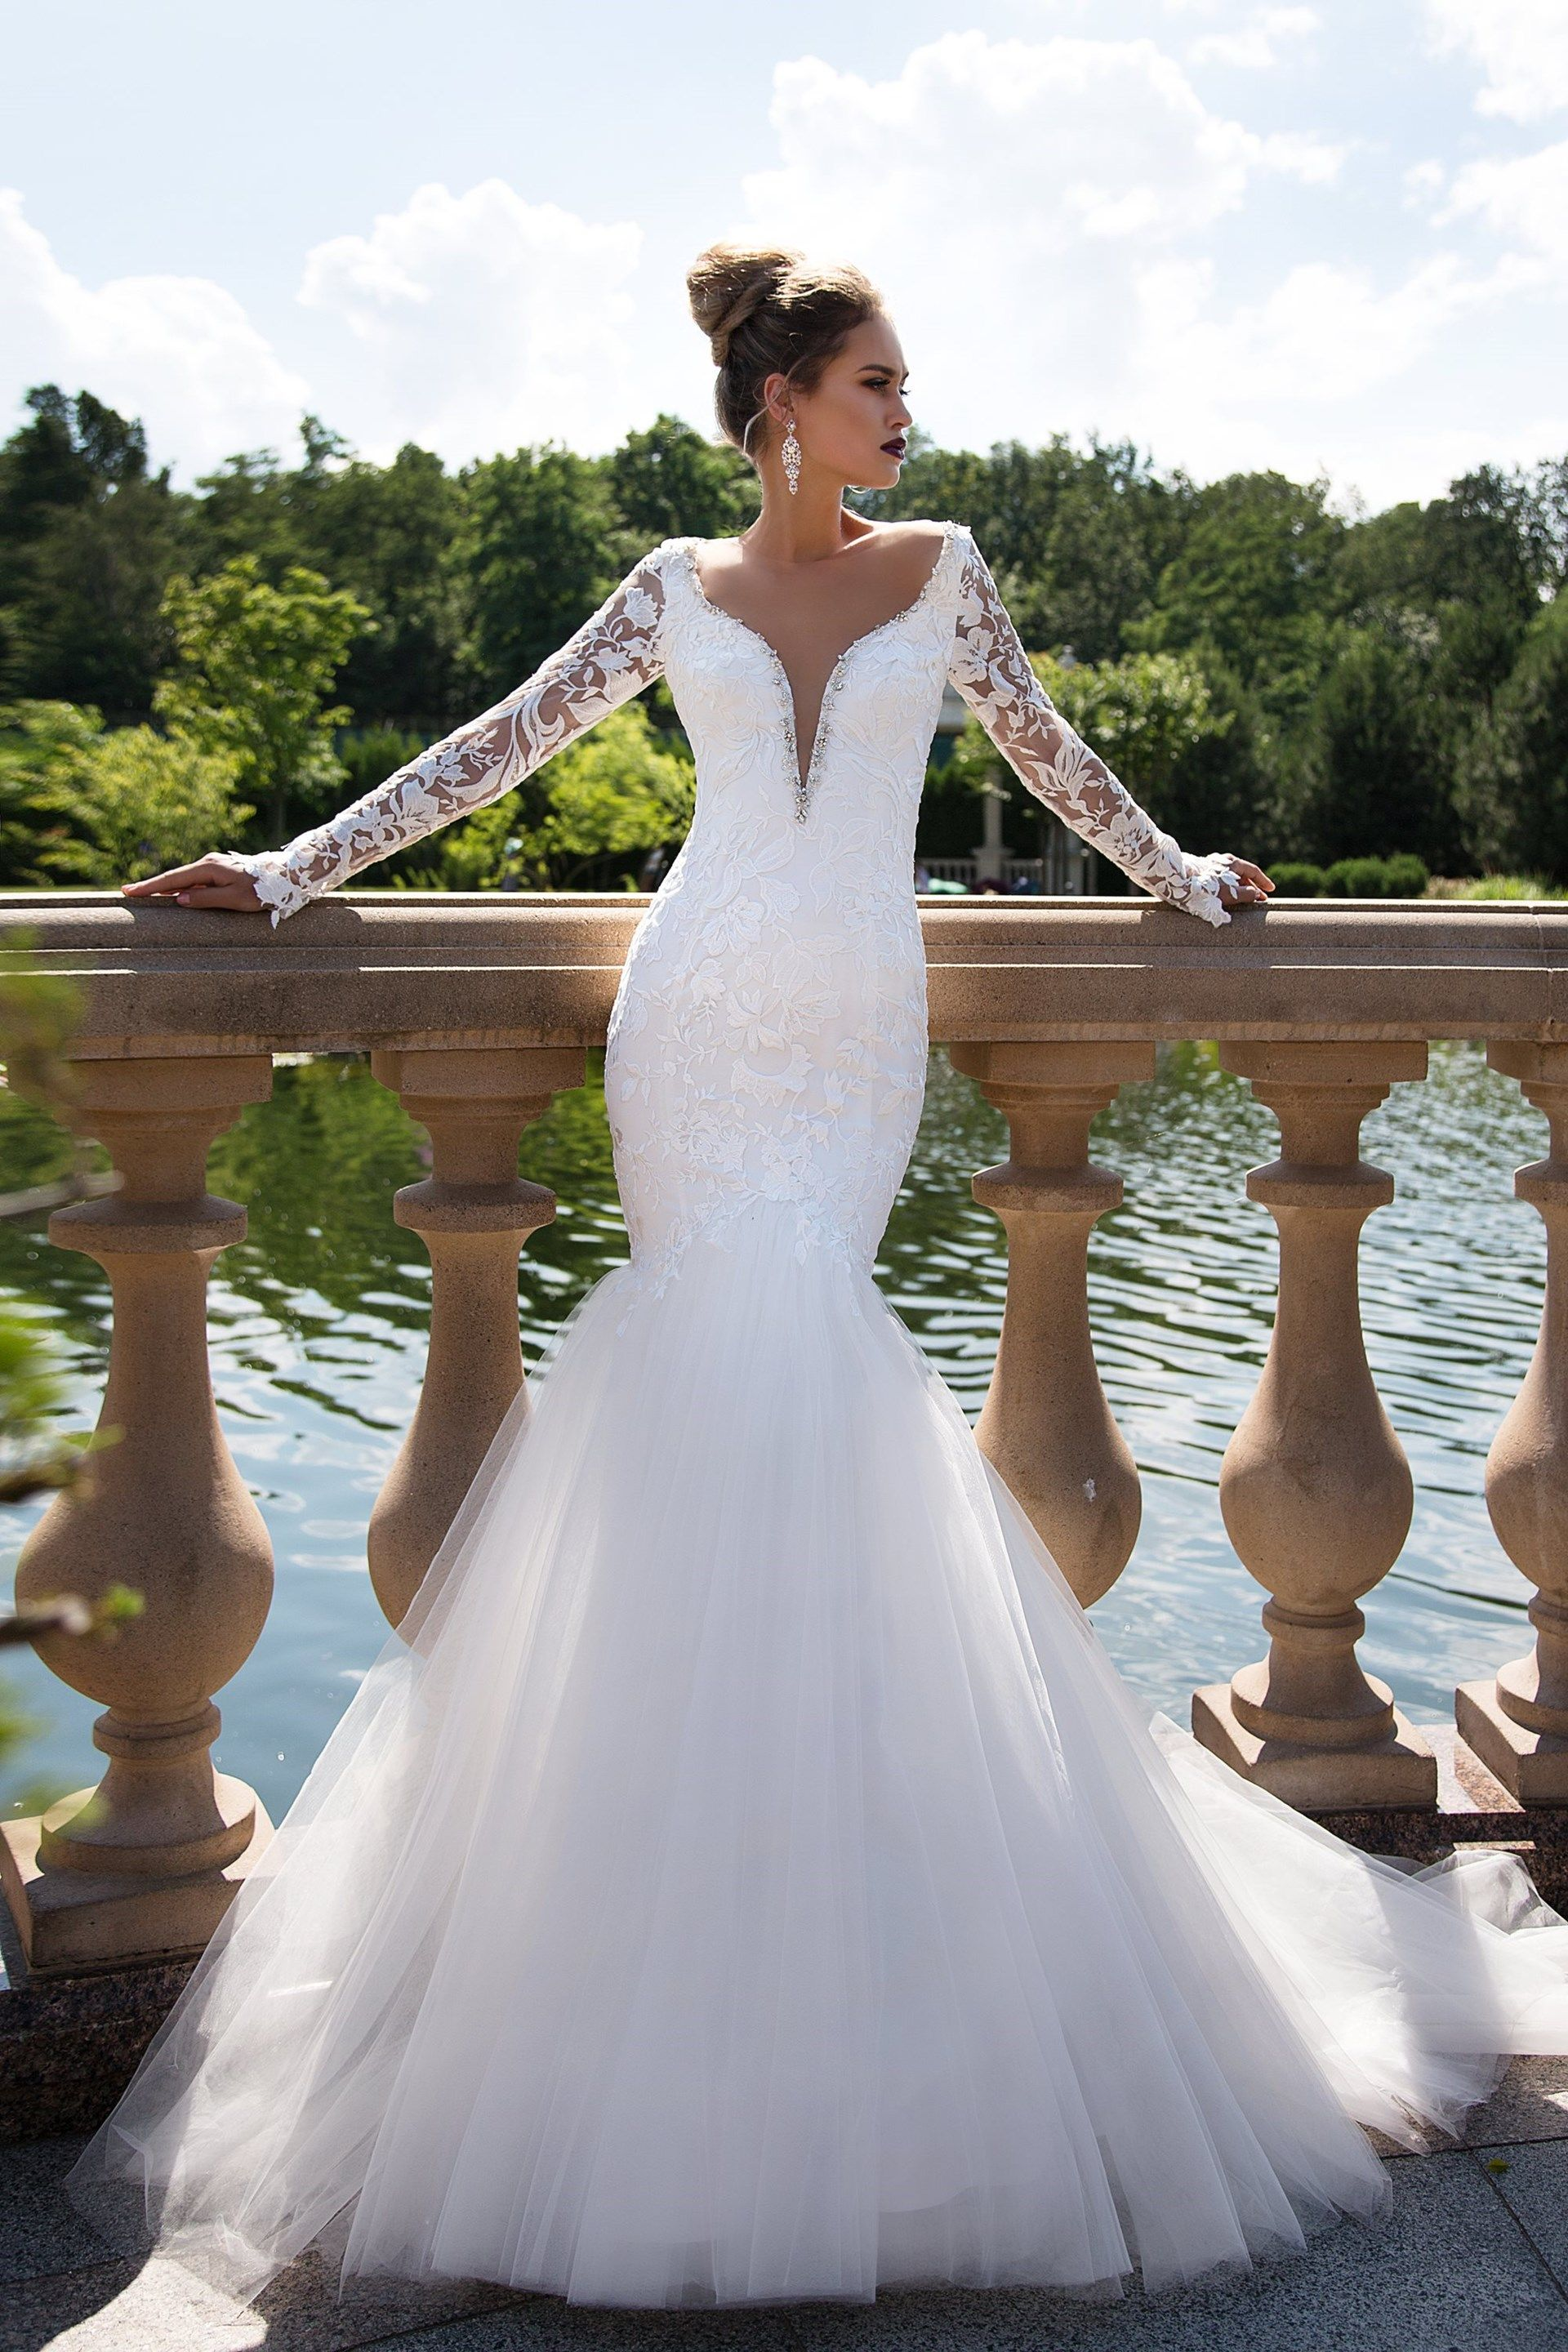 Wedding dresses in bulk and accessories  Collections  Pearl